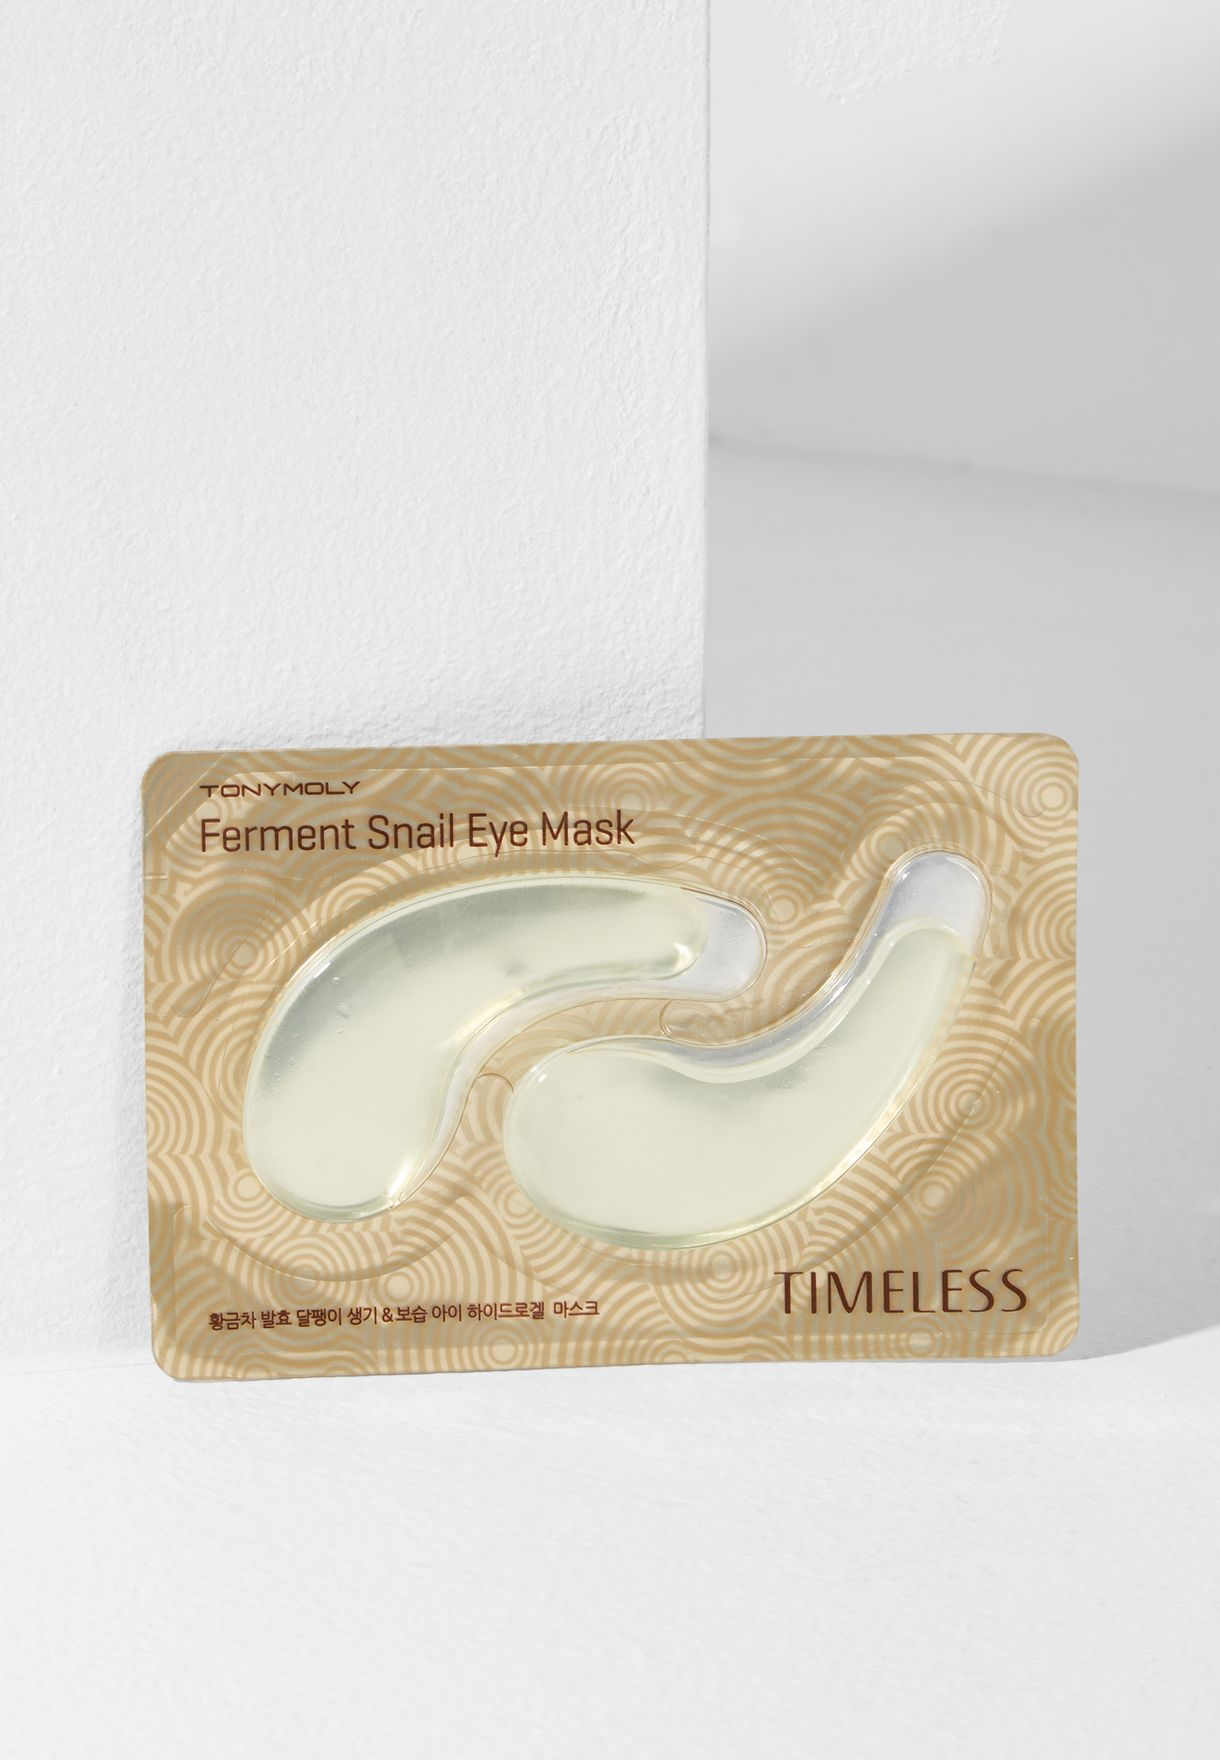 Ferment Snail Eye Mask